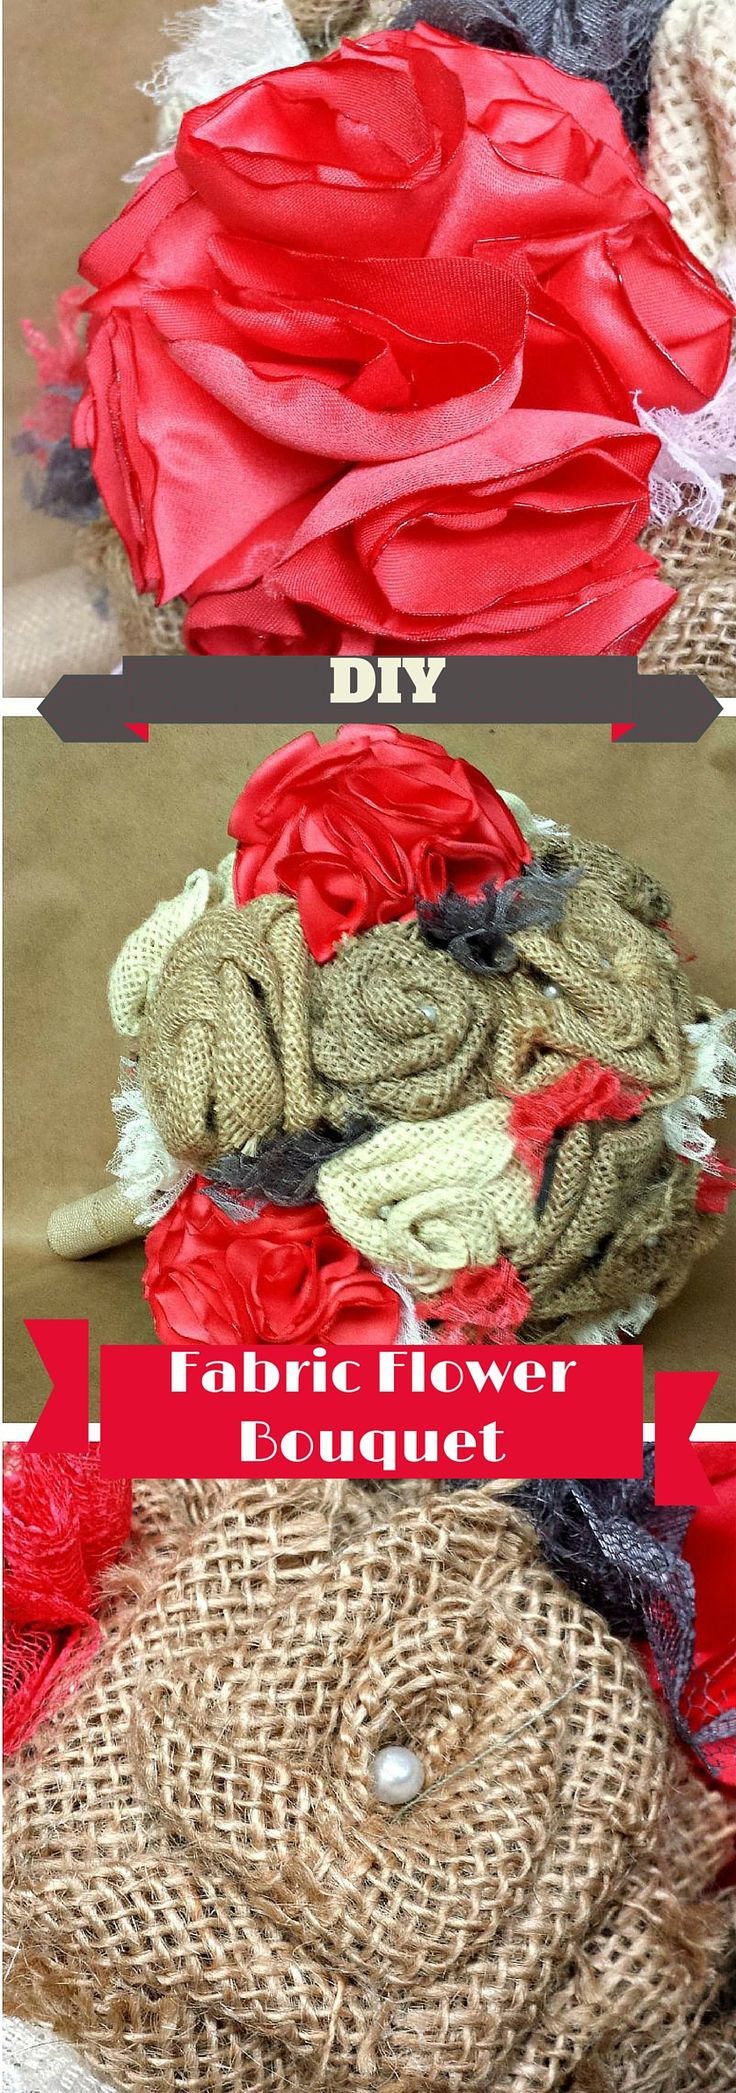 Wedding Flowers Too Expensive : Best ideas about fabric flower bouquets on